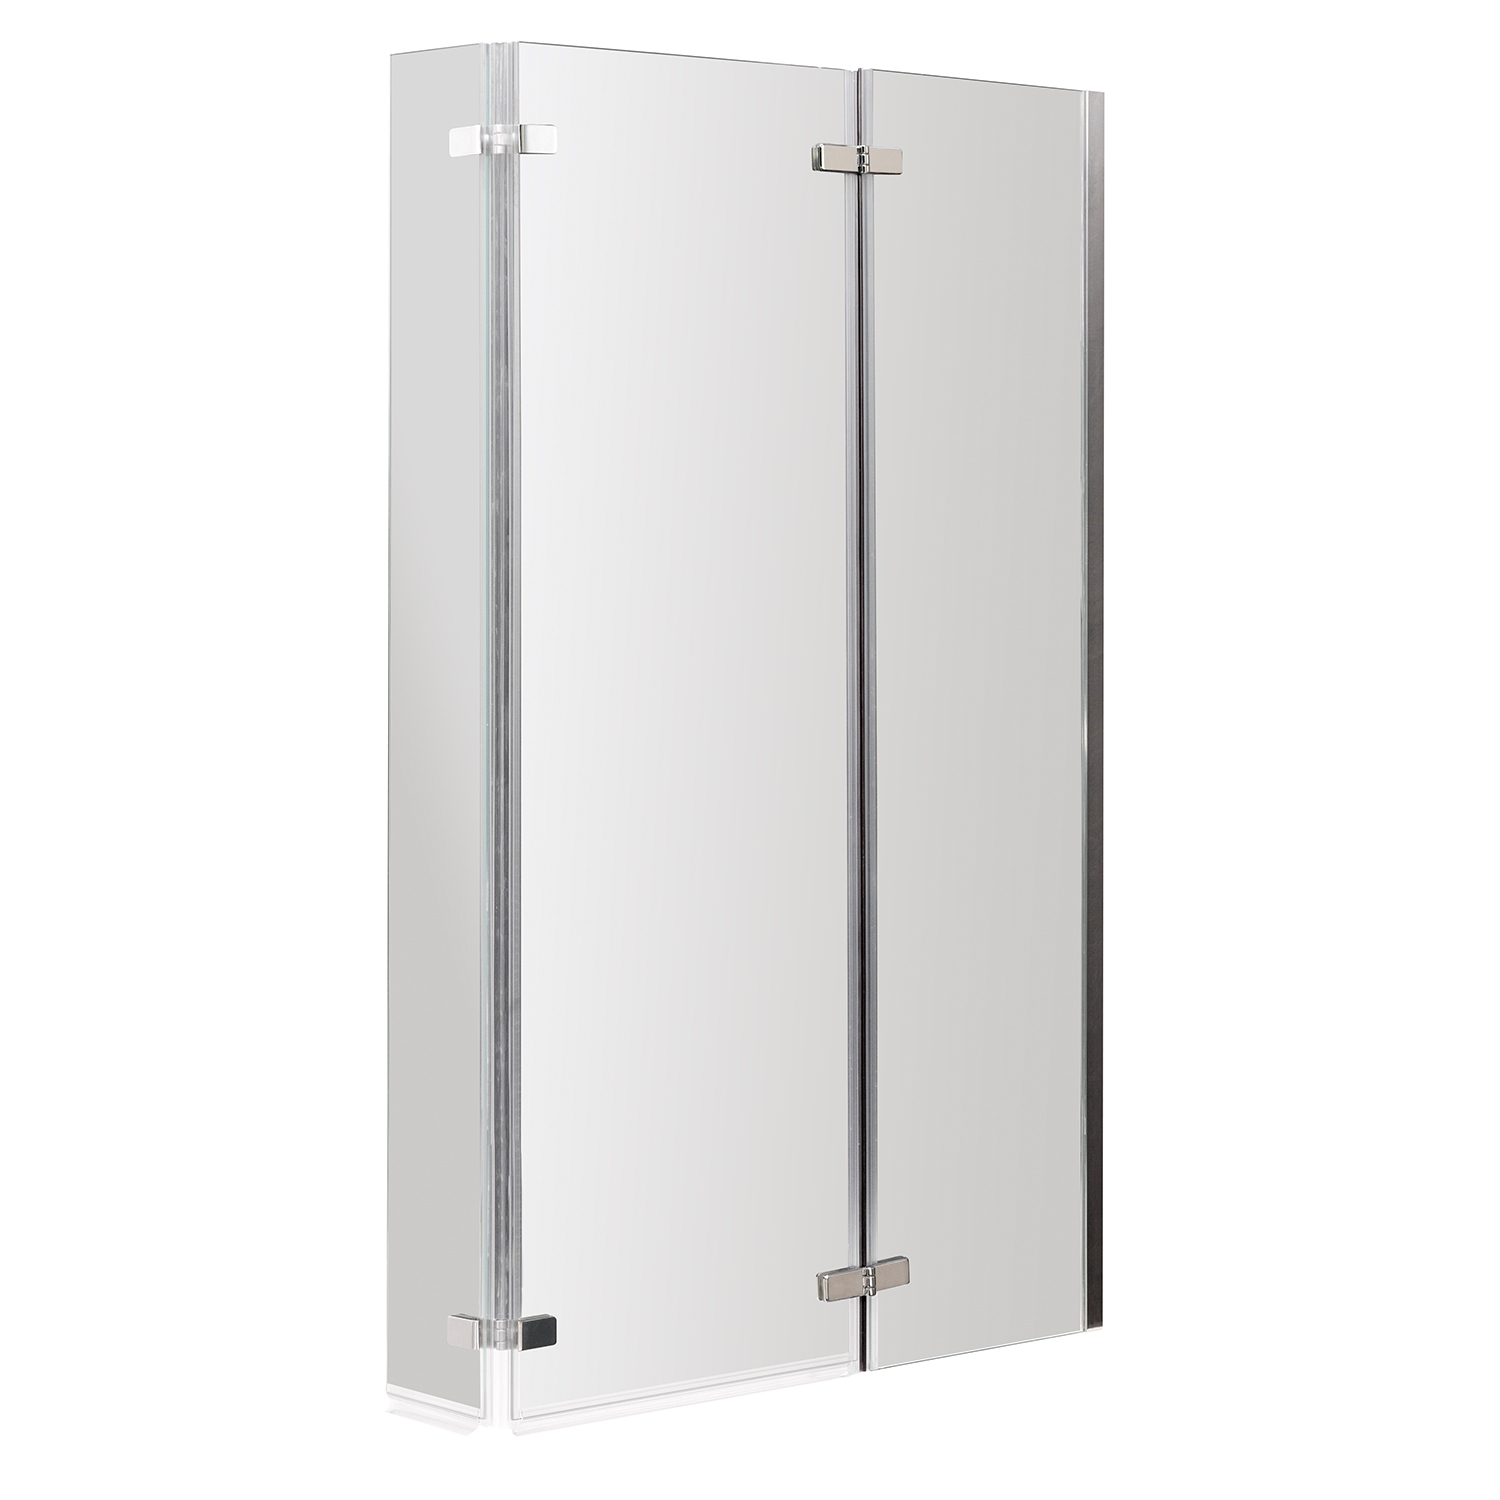 Premier Cove L-Shaped Shower Bath Panel Hinged Screen 1700mm x 700mm/850mm Right Handed